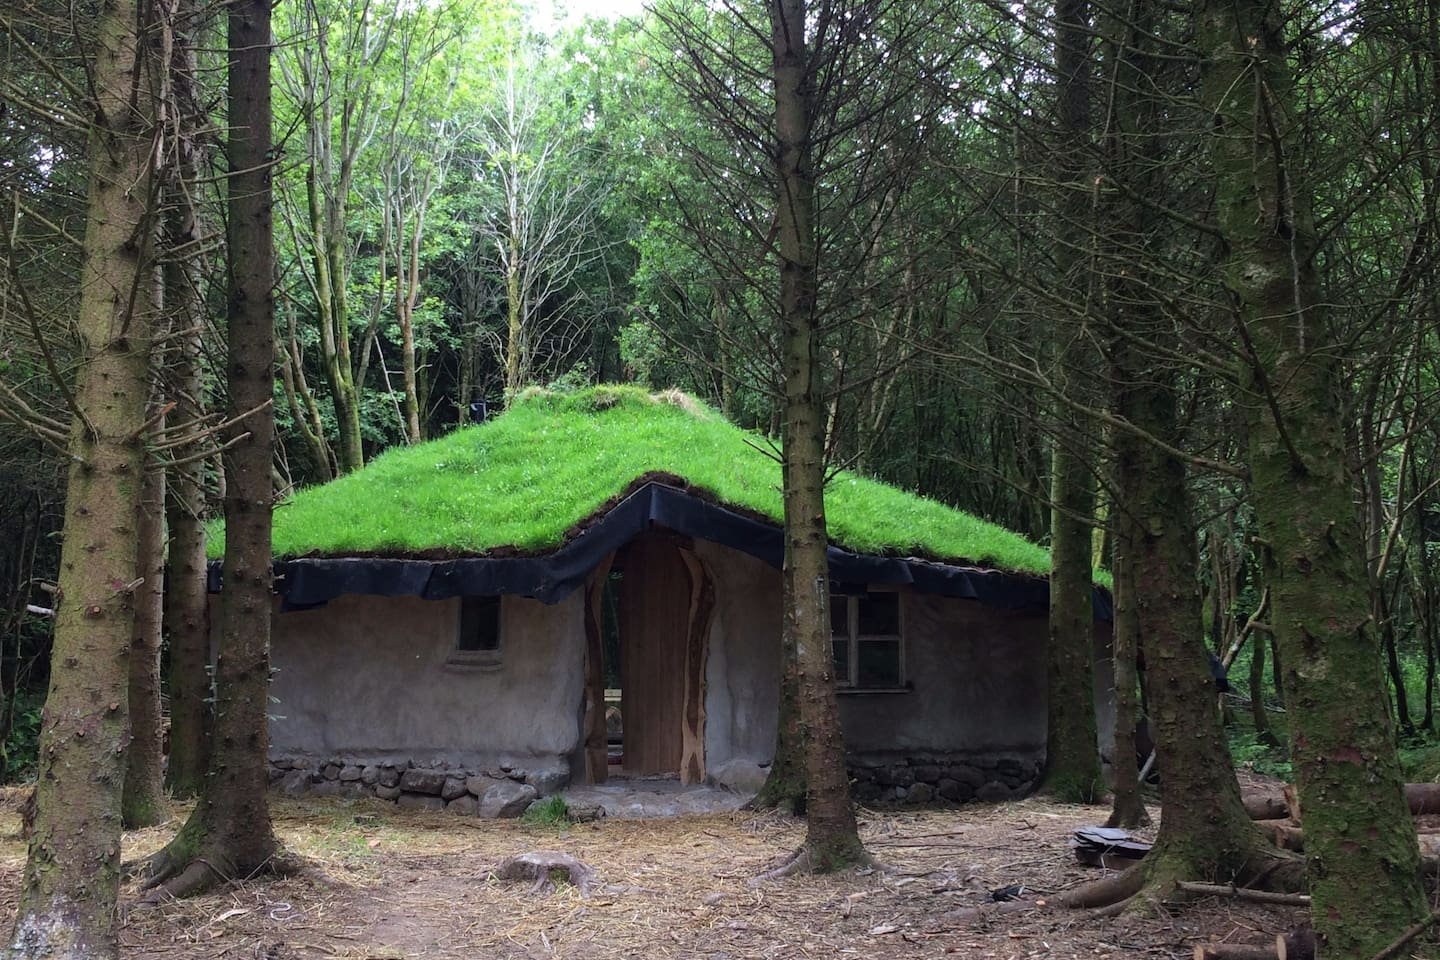 Fairy, witch, hobbit or you? who lives in a house like this?